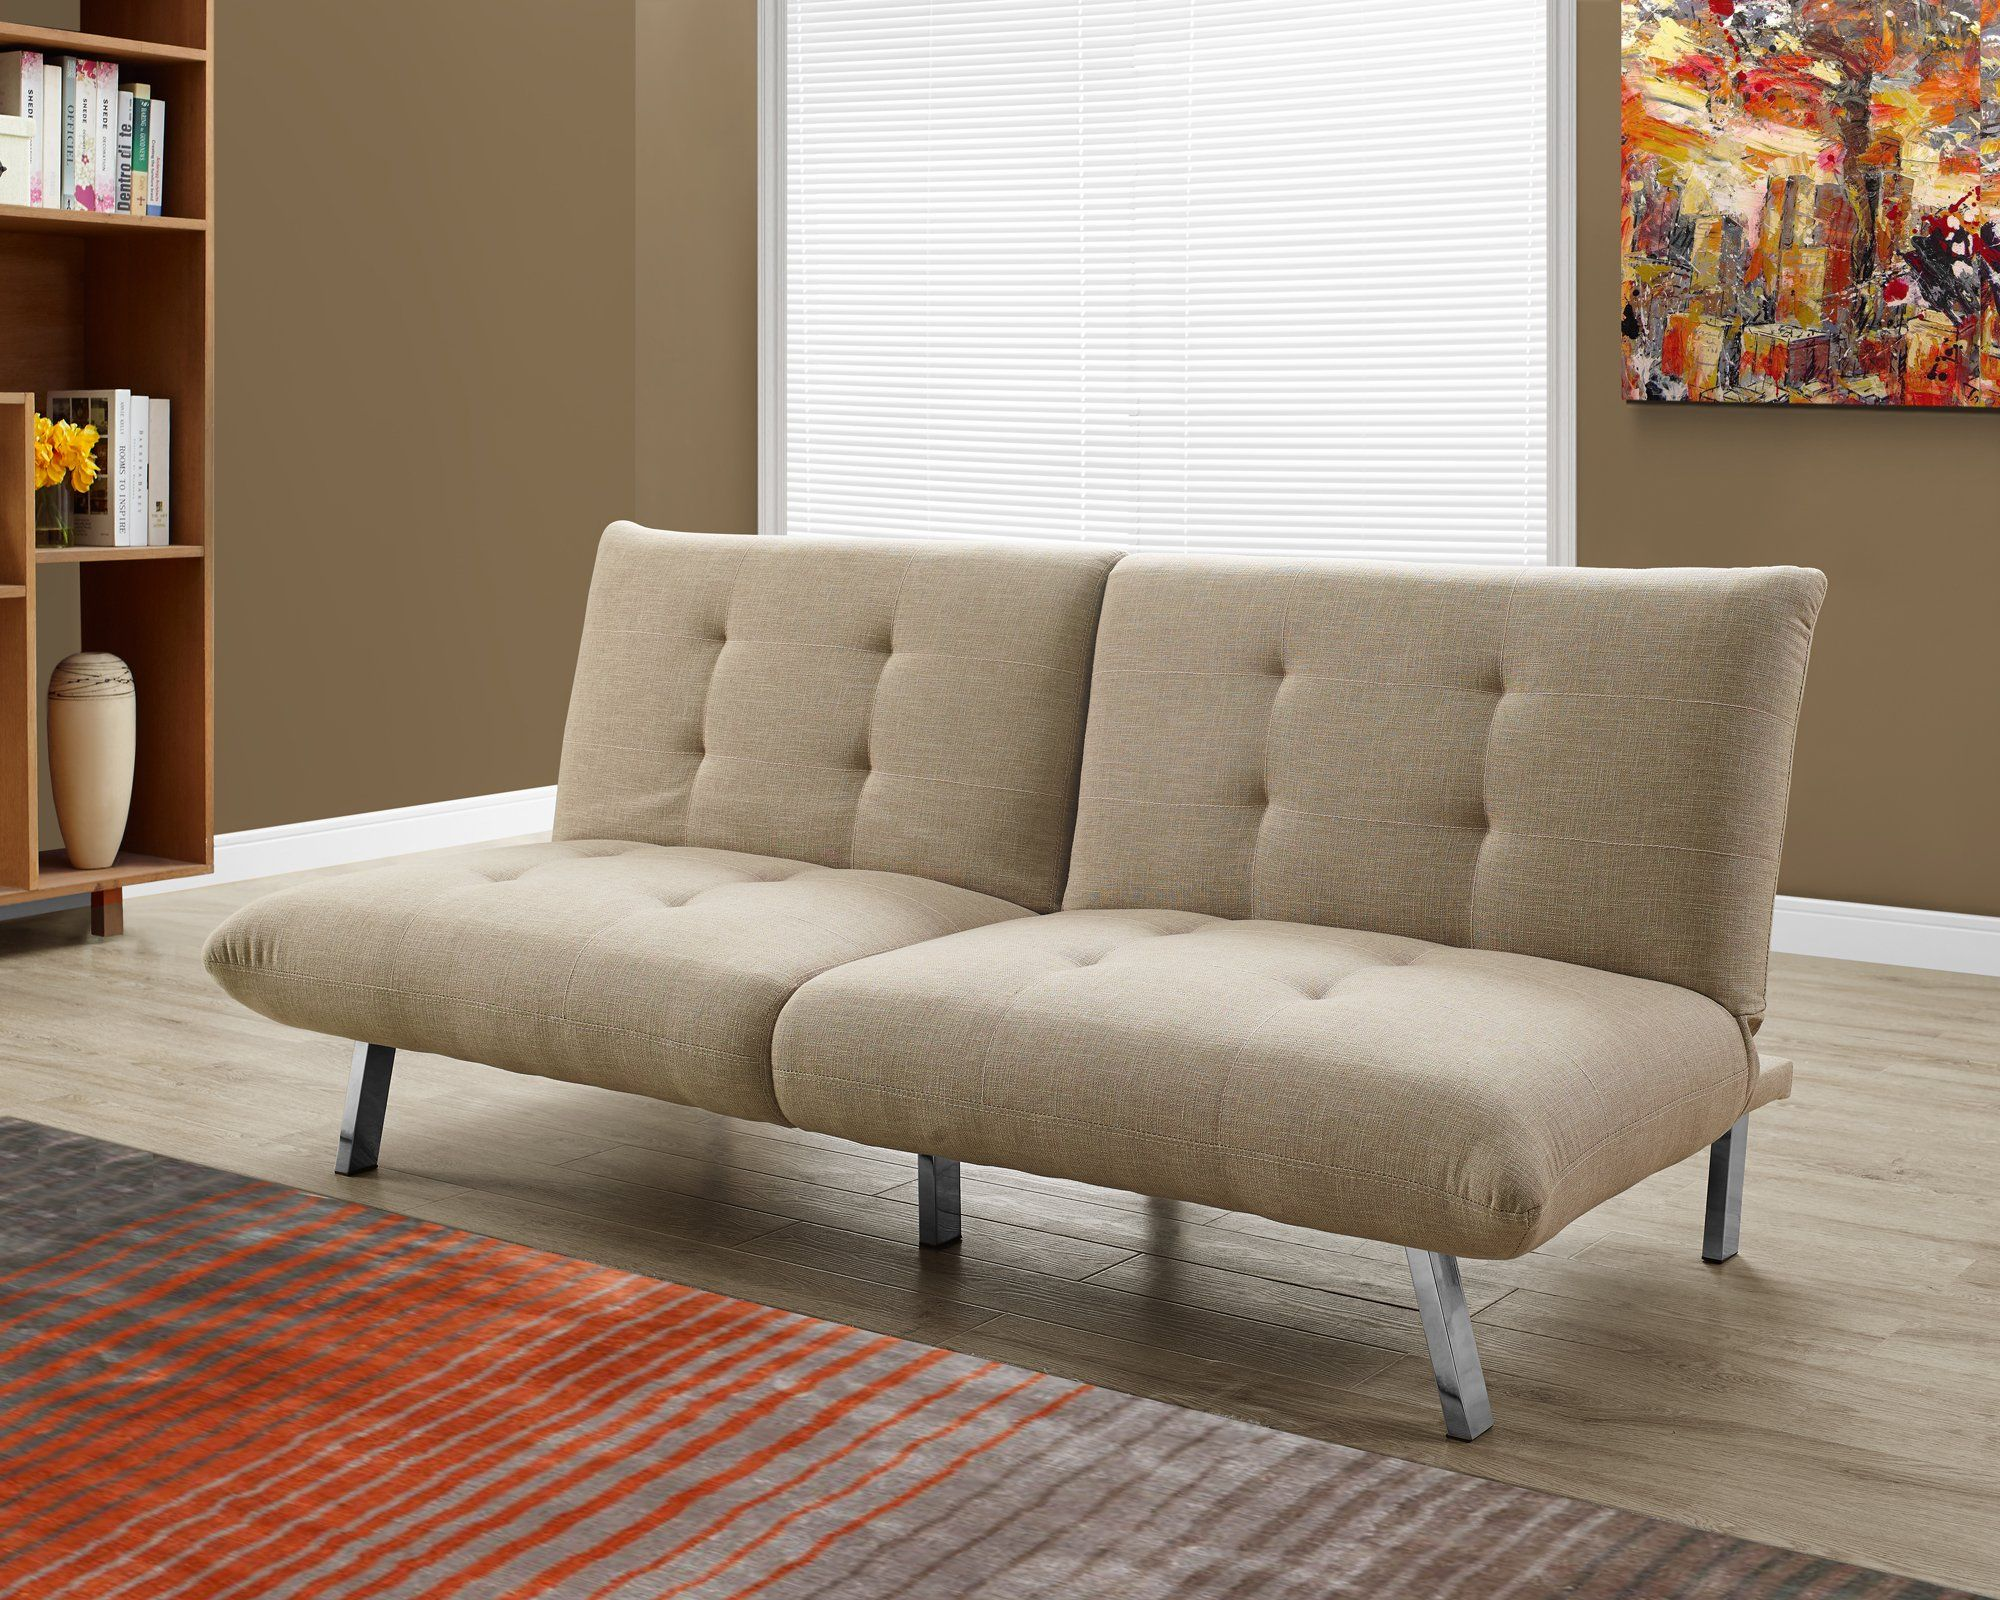 Abbyson Living Belize ClickClack Sofa Gray Sofa bed